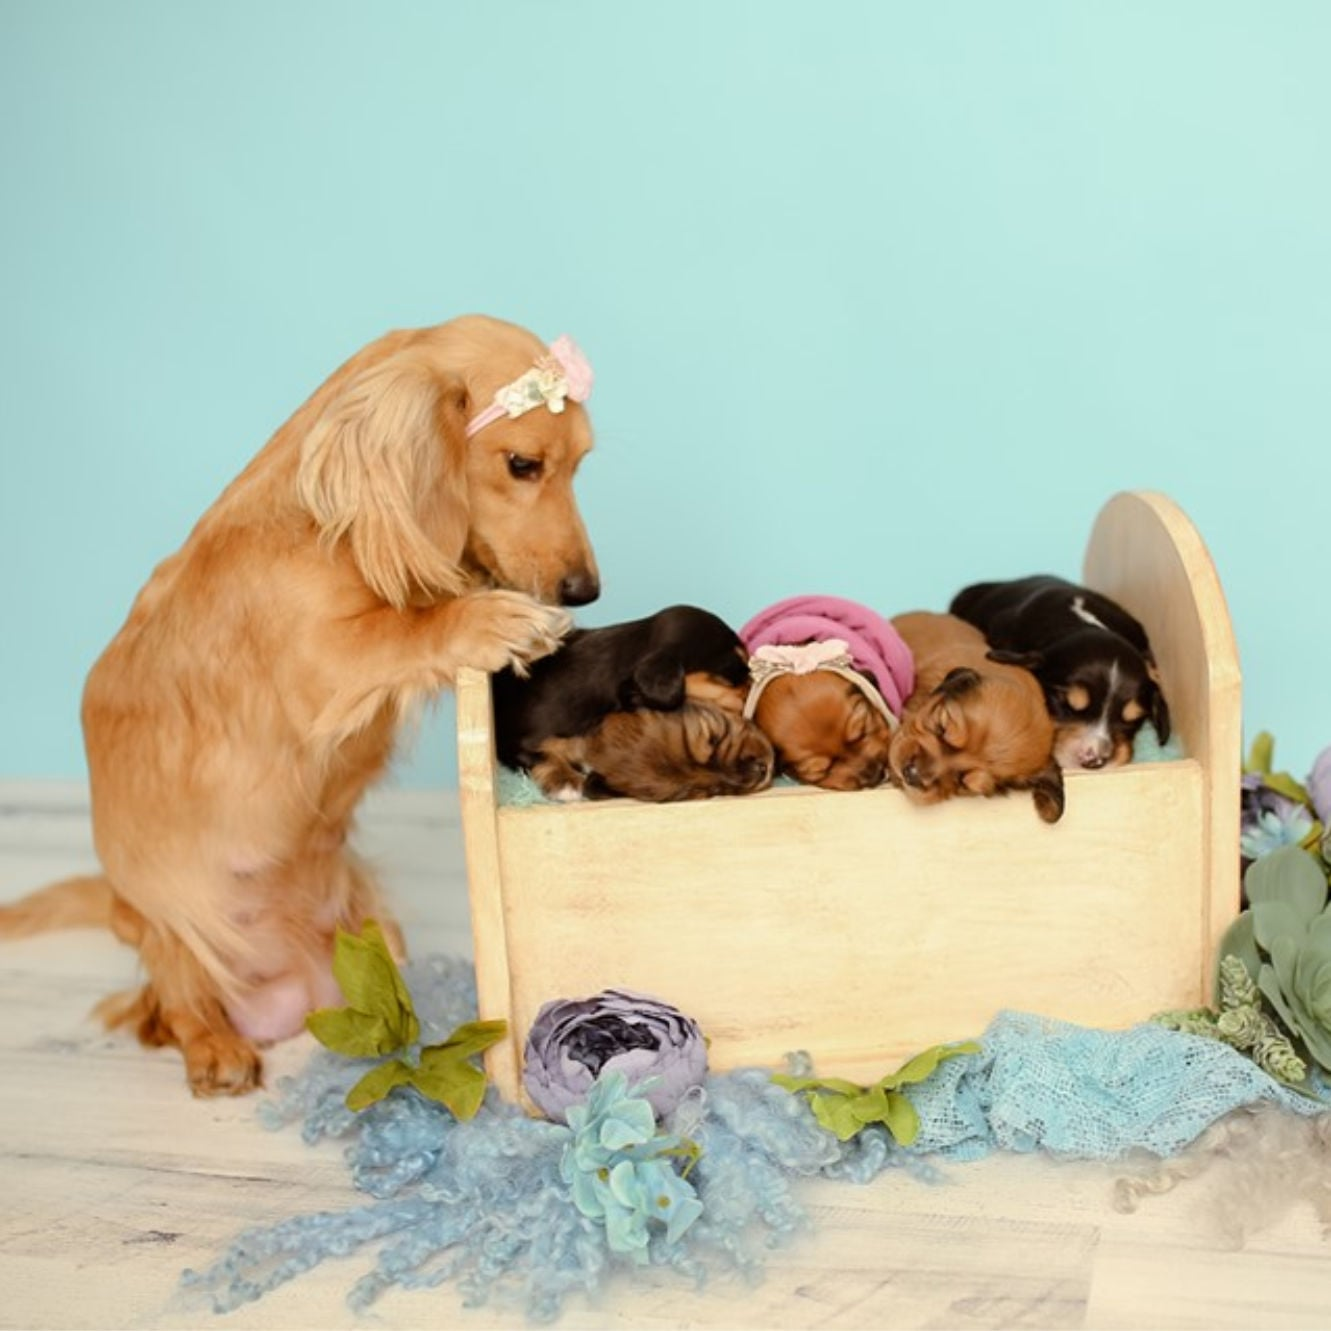 Adorable Dachshund Newborn Photo Shoot Laura Shockley Popsugar Pets